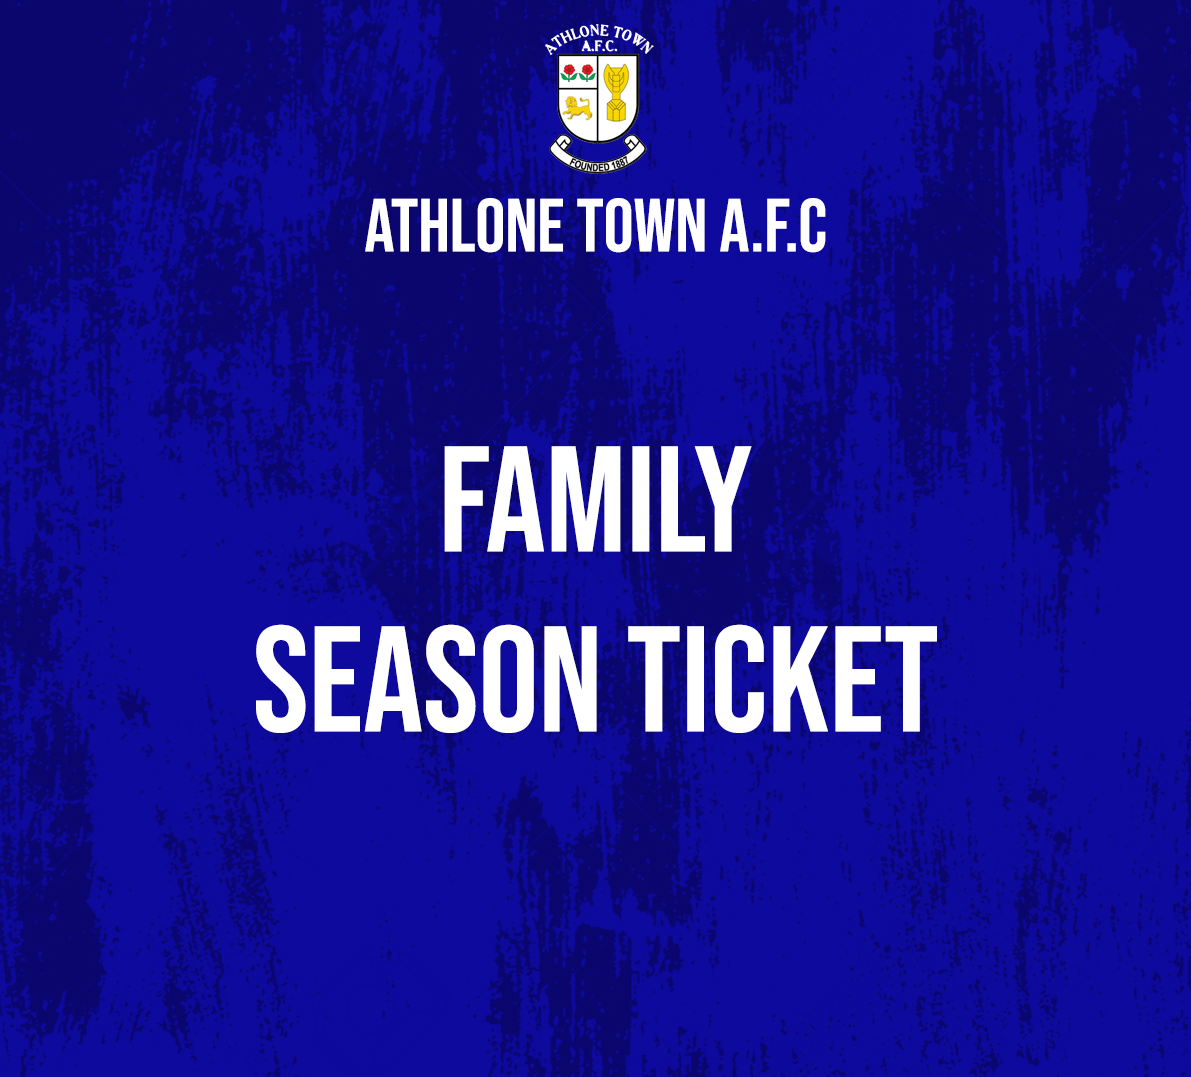 Athlone 20town 20family 20season 20ticket